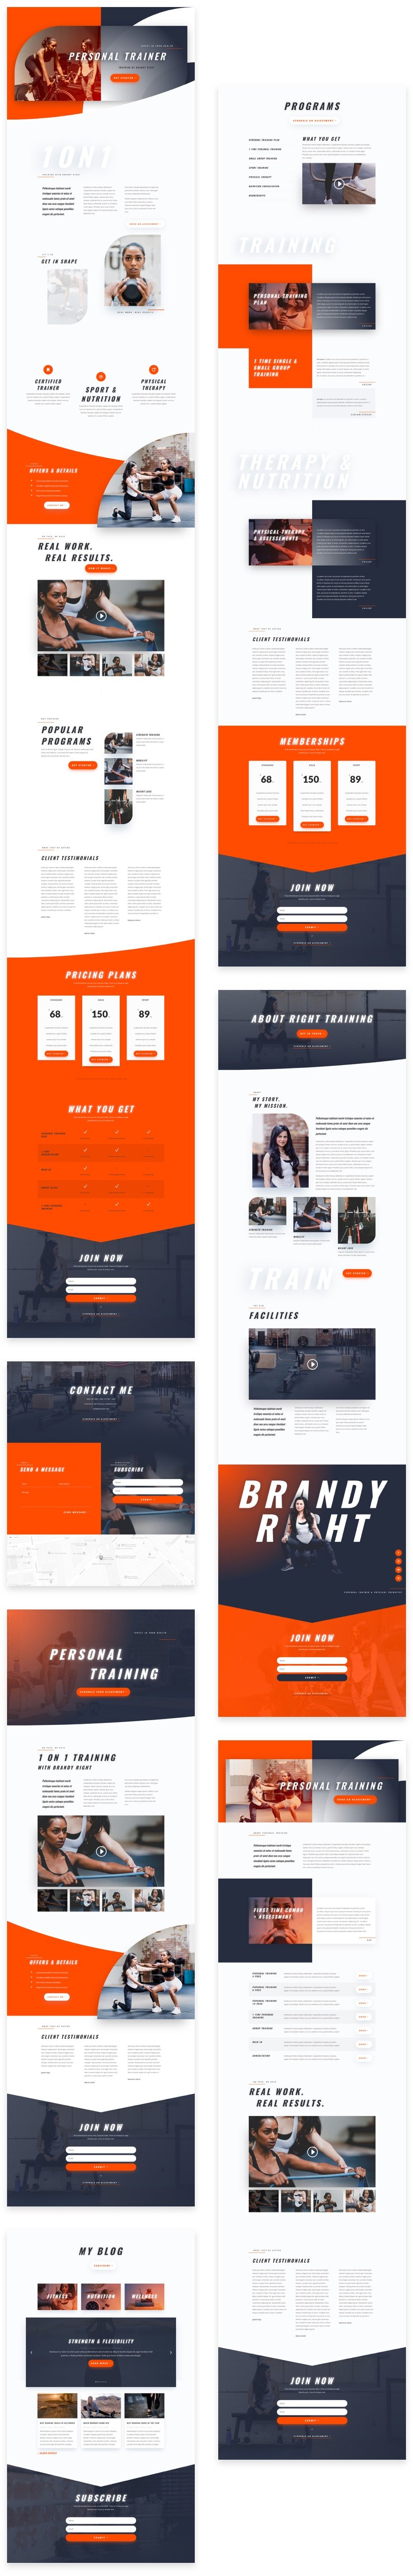 Personal Trainer Layout Pack